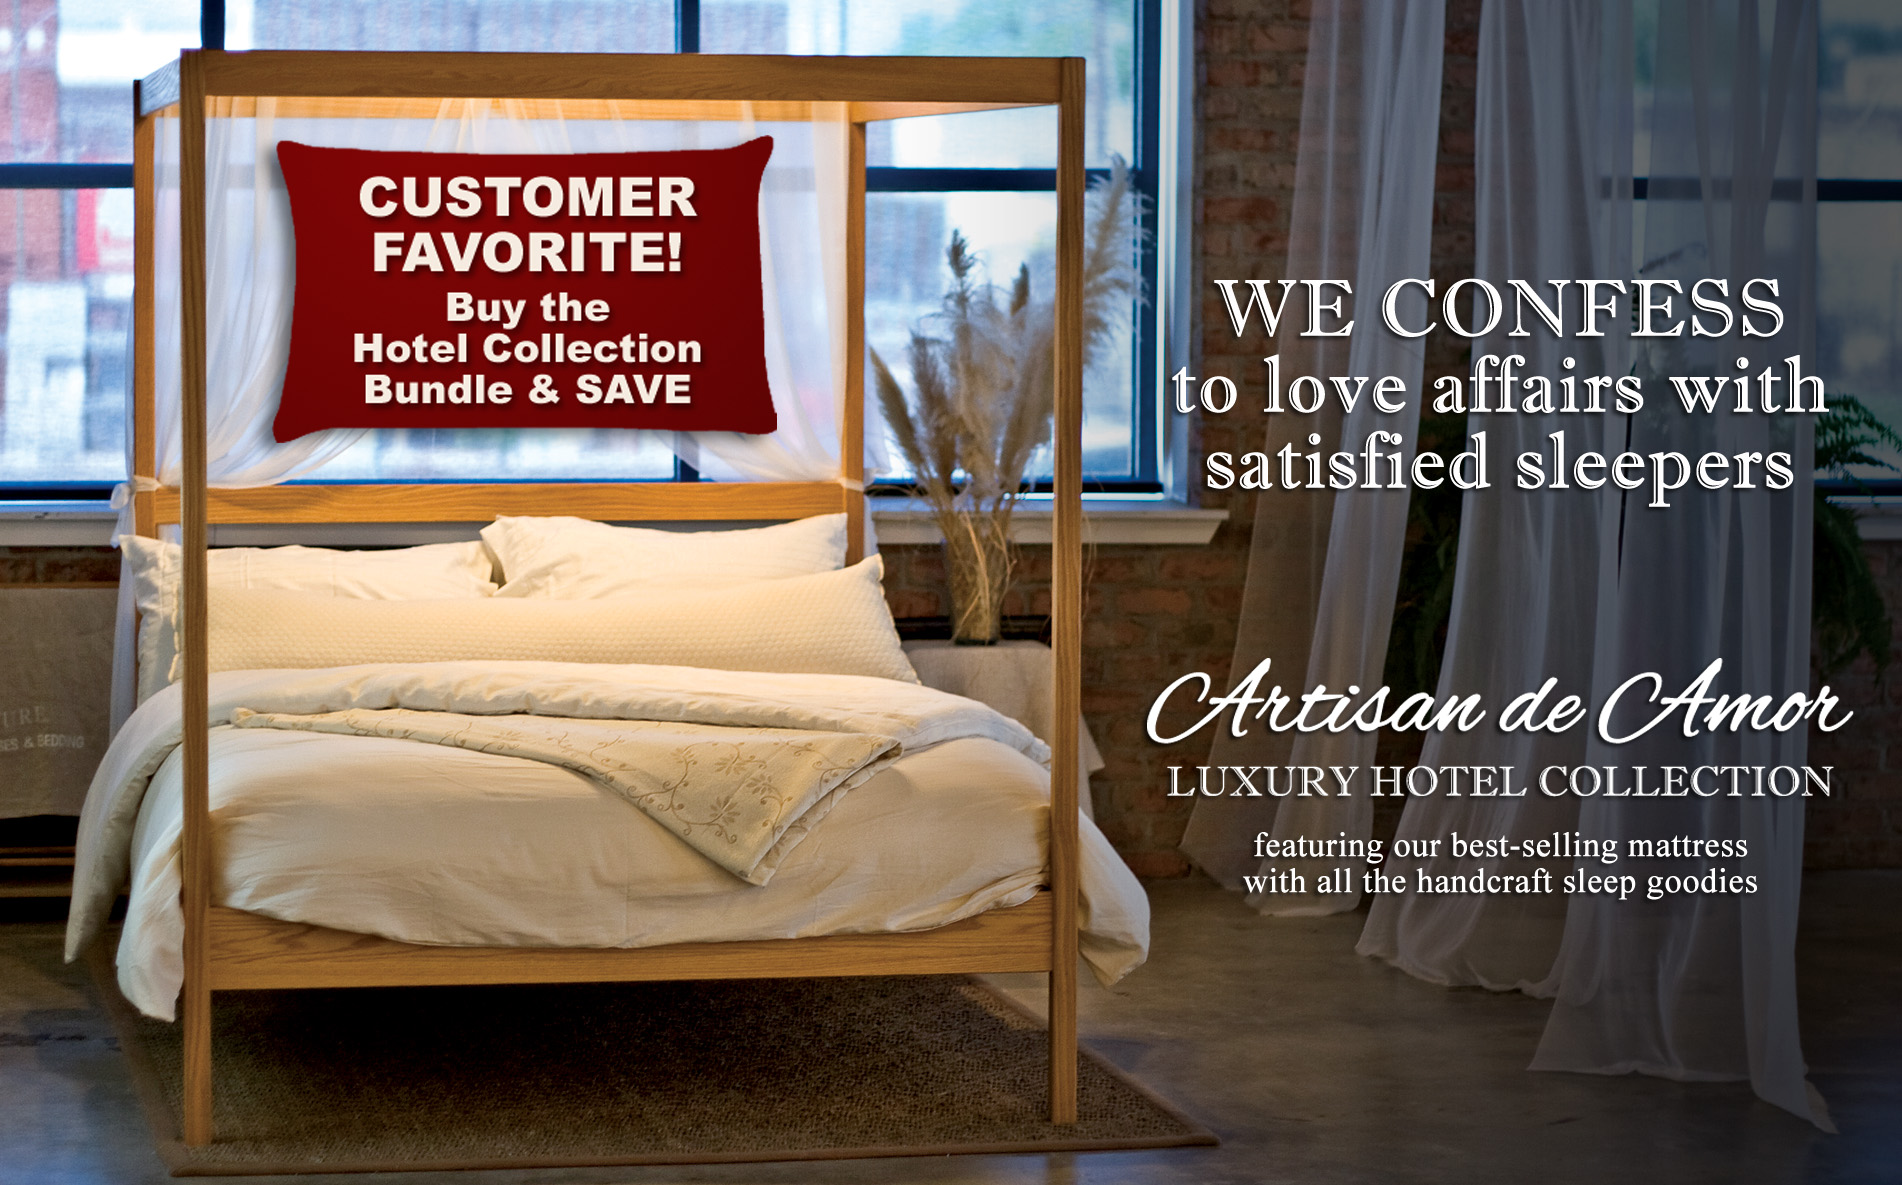 Save! Buy the Hotel Collection